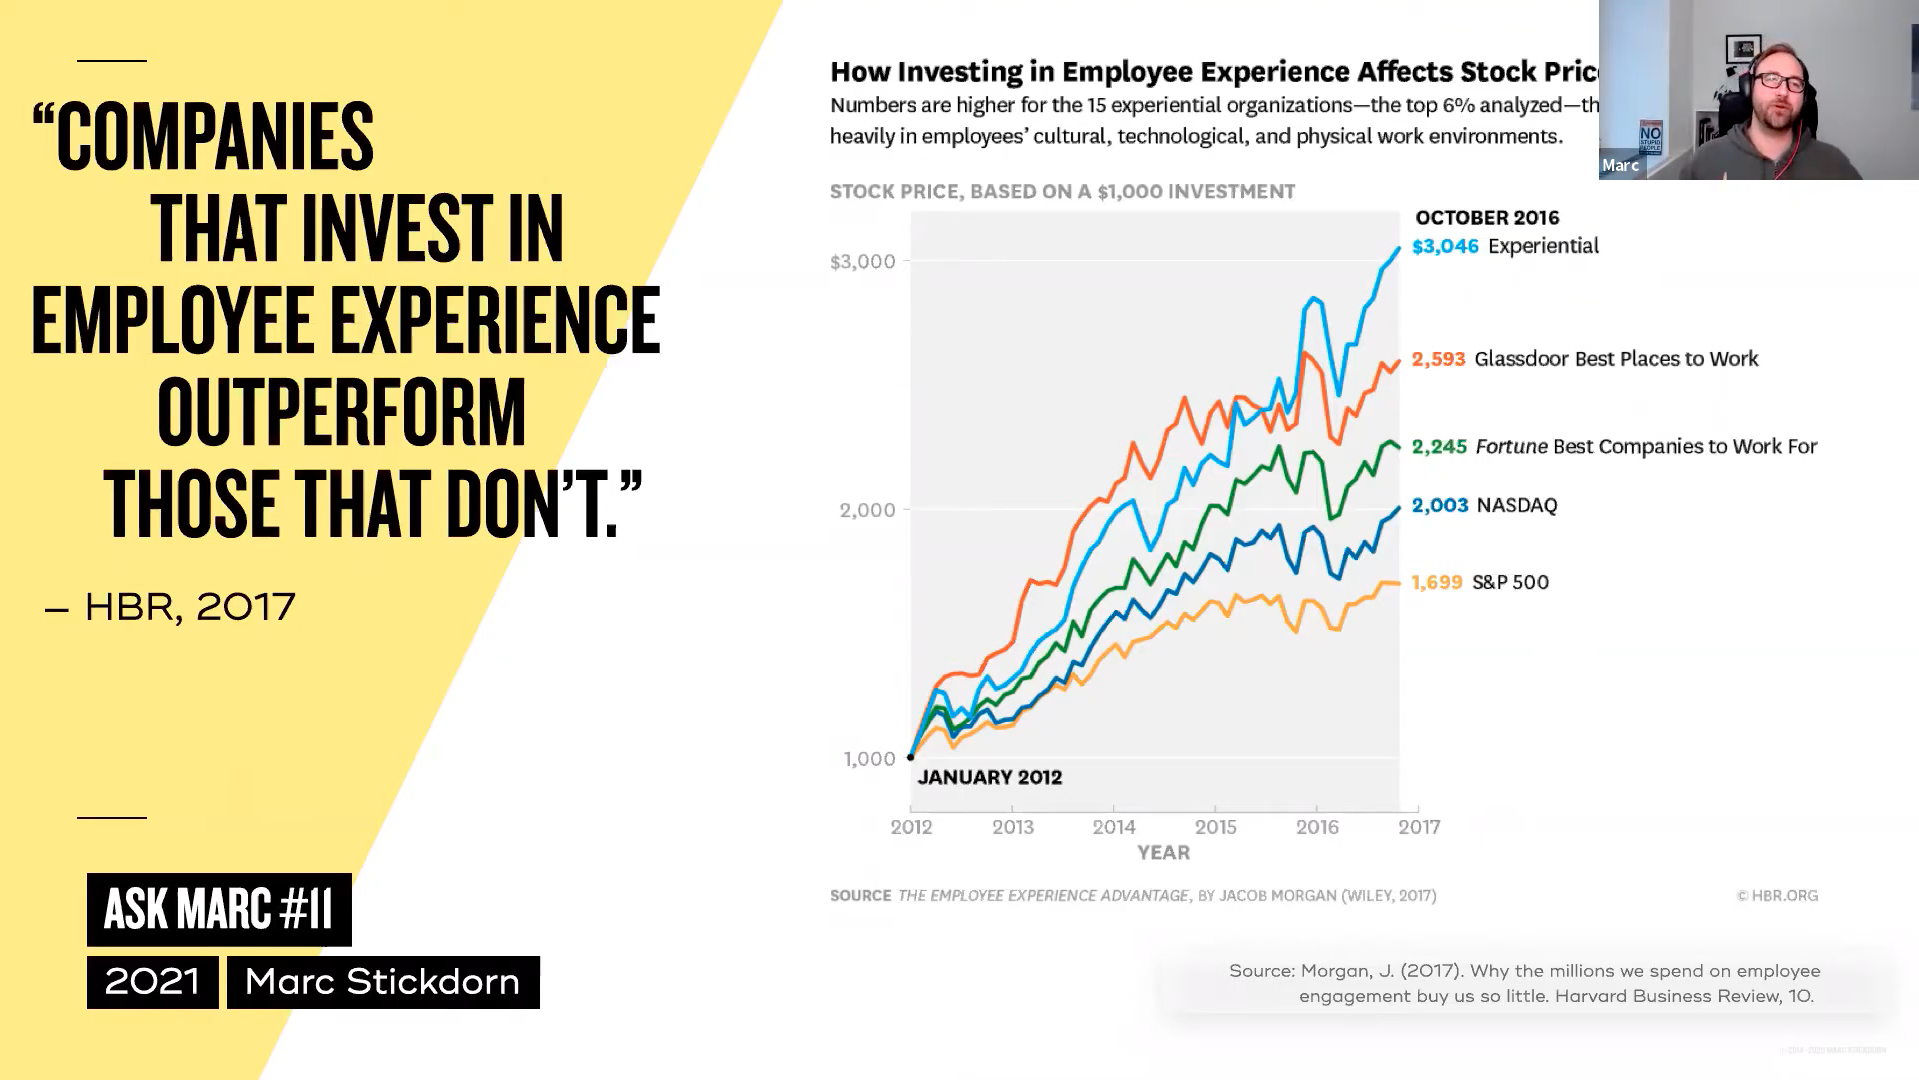 visualization of how investing in employee experience affects stock prices. in graphs: experiential, glassdoor, fortune, NASDAQ, S&P 500